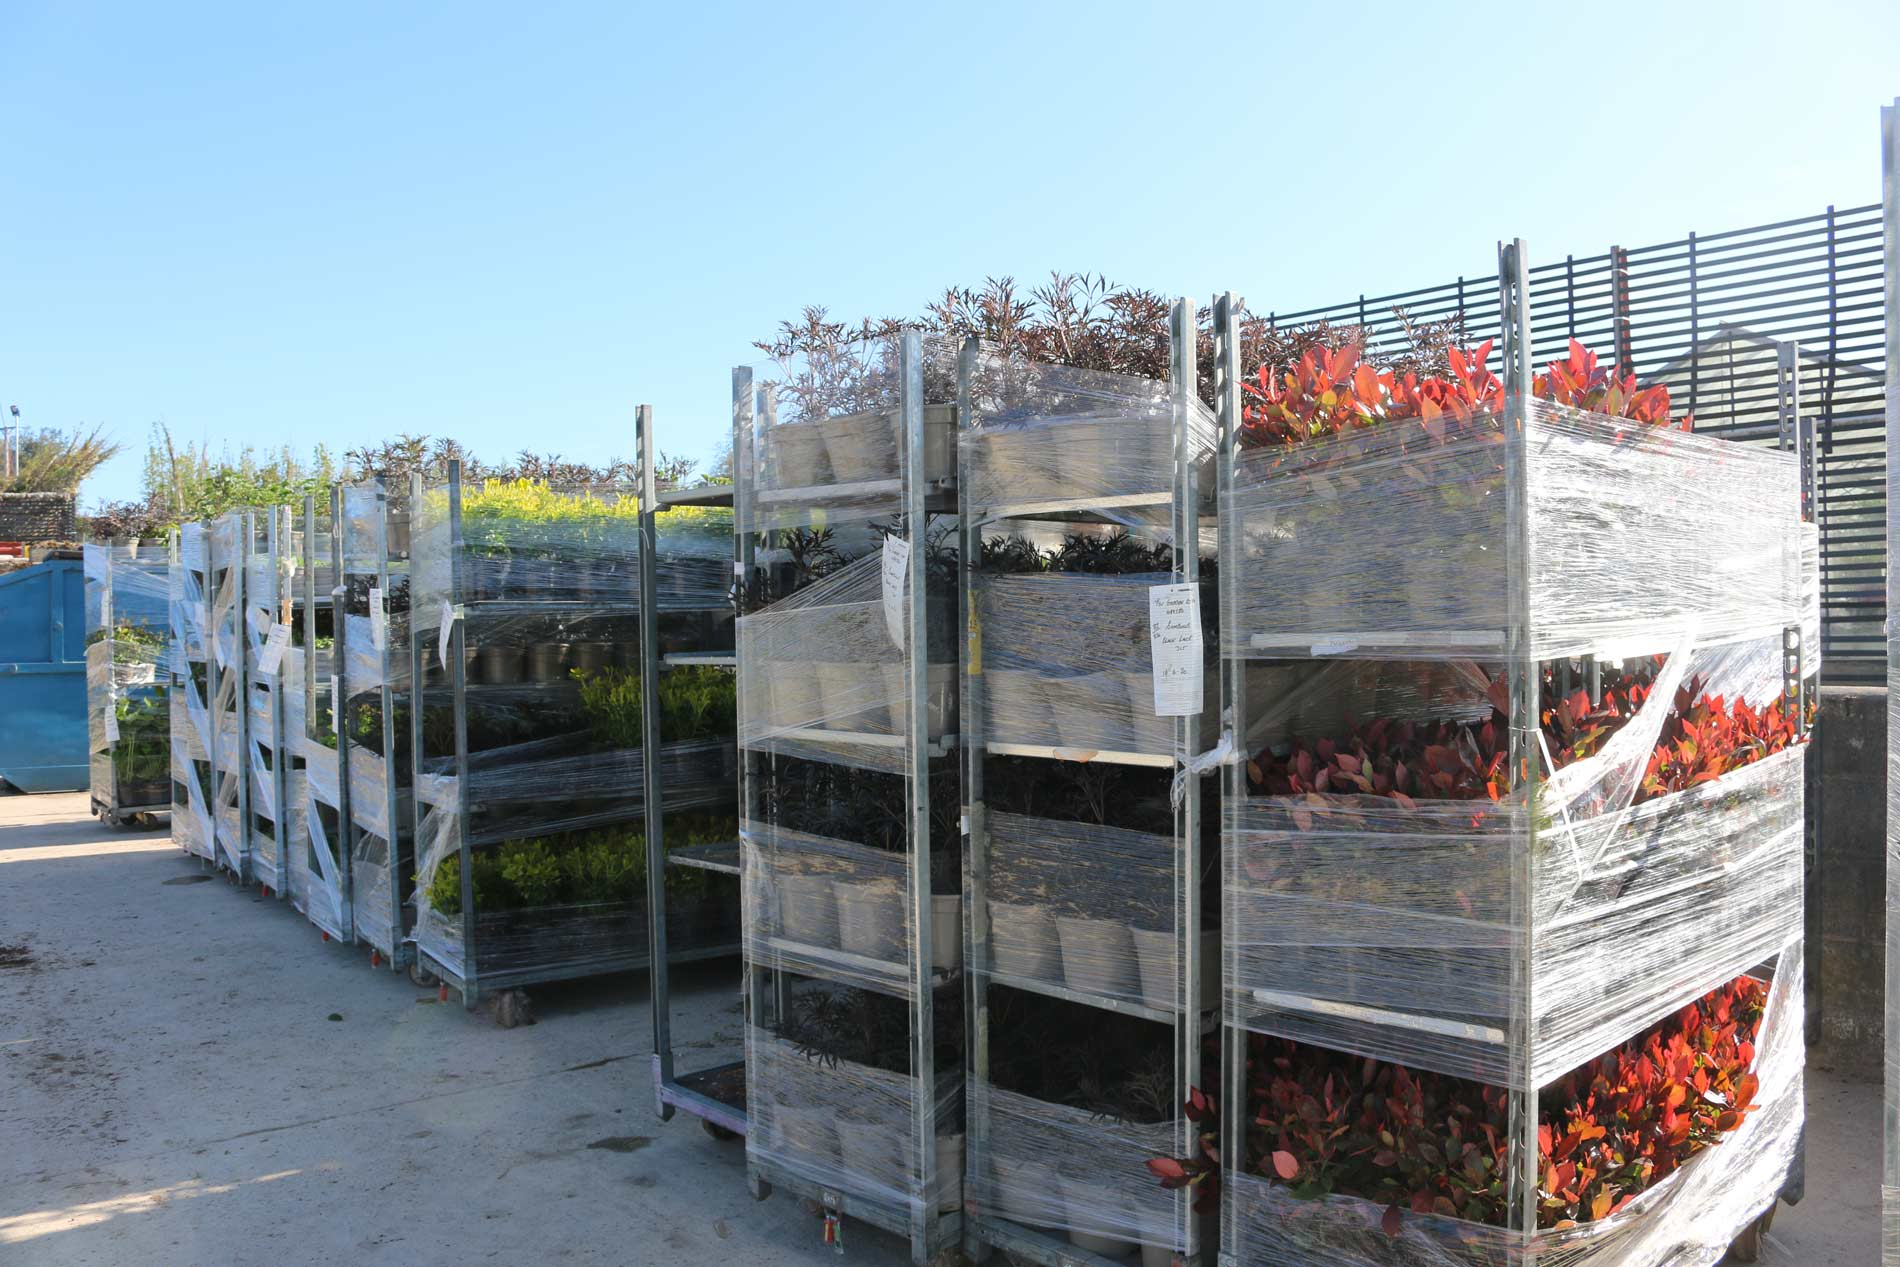 Orders ready for delivery after Plant Health checks - Johnsons of Whixley